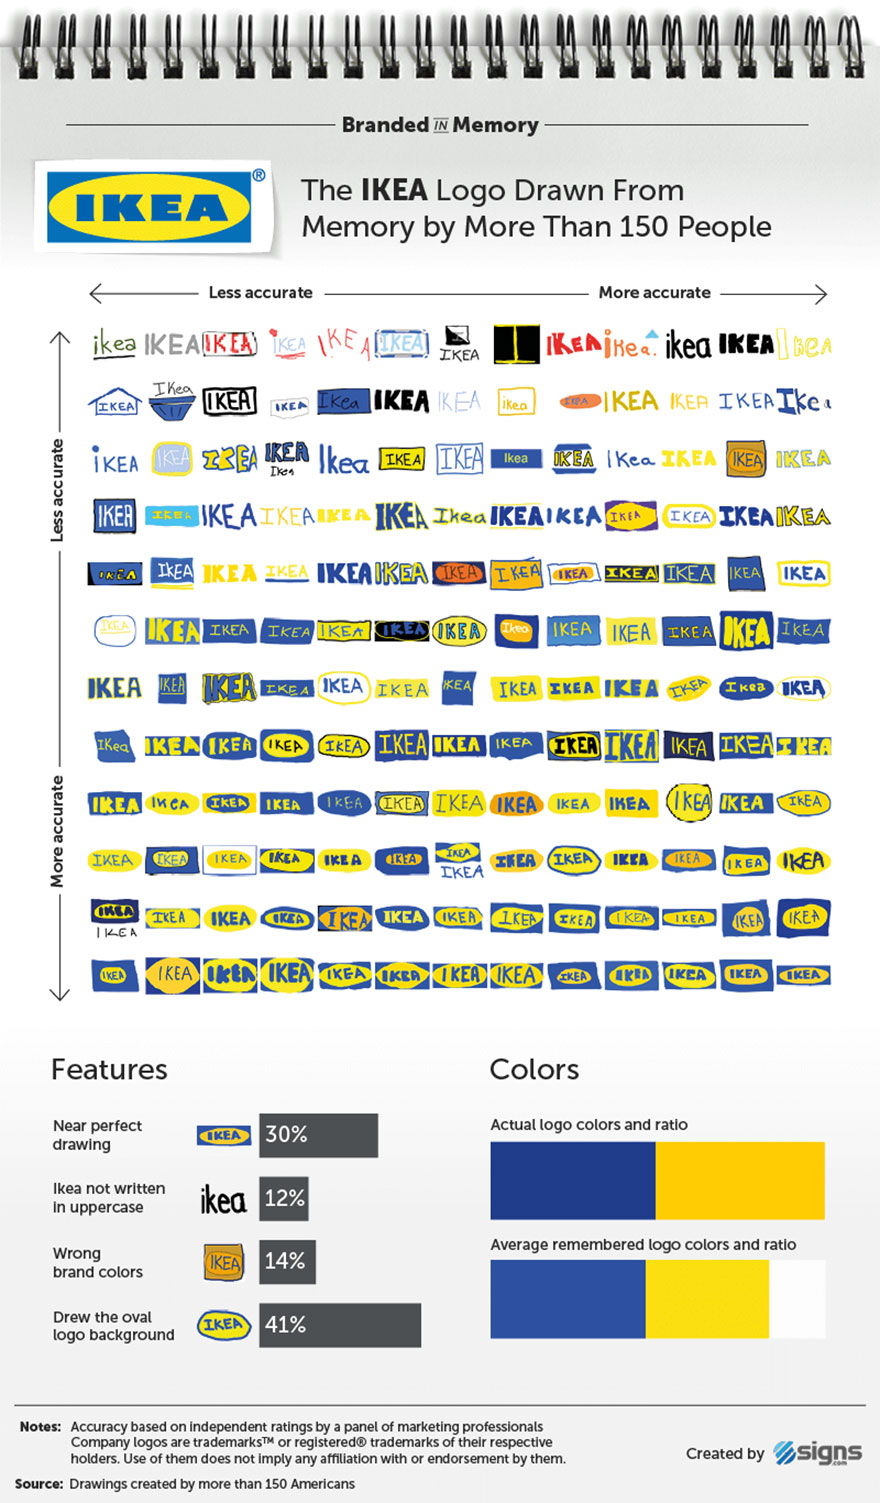 famous-brand-logos-drawn-from-memory-13-